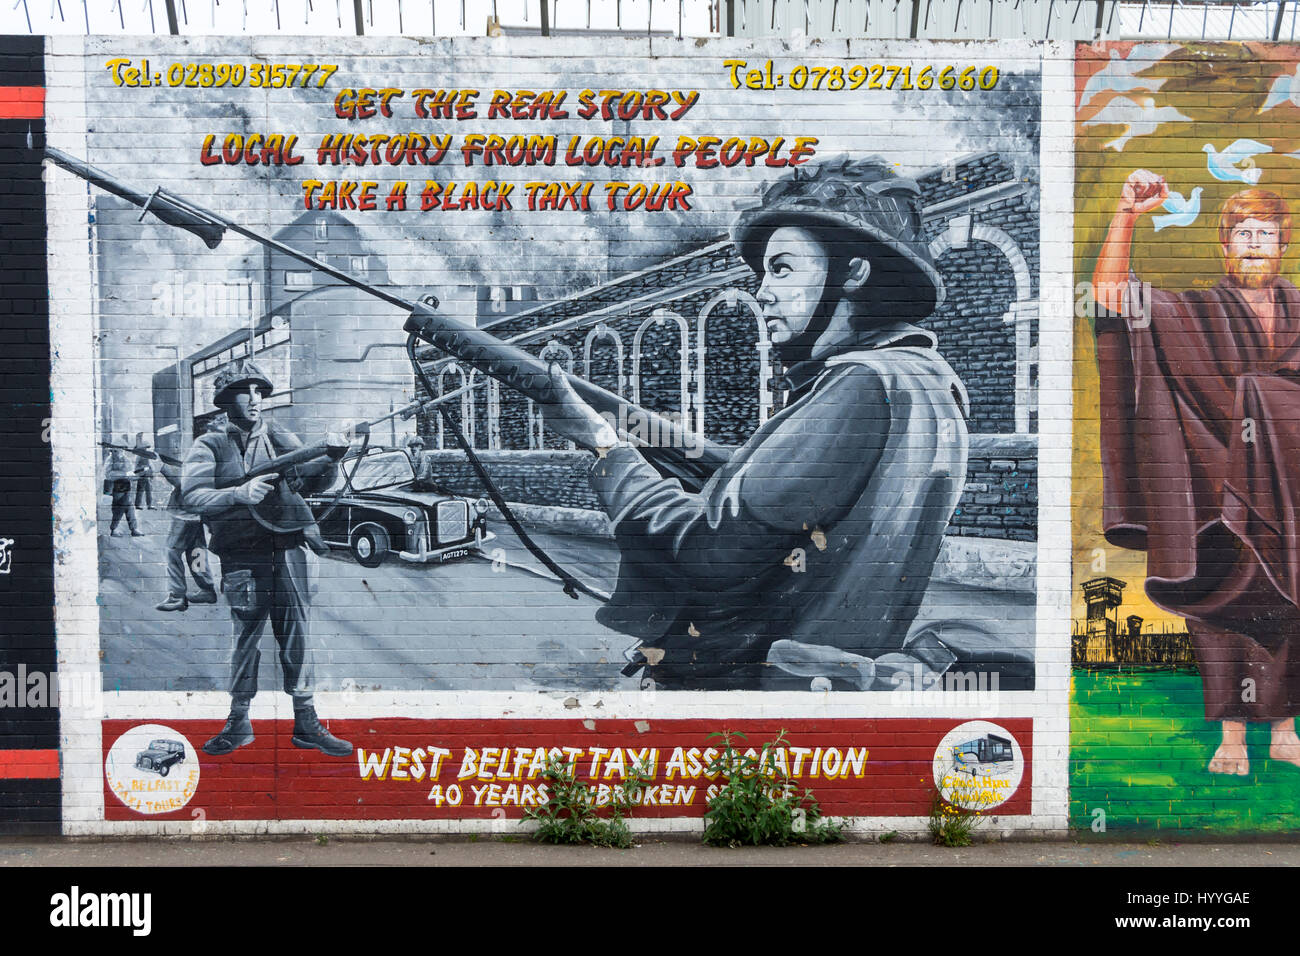 West Belfast Taxi Association wall mural on the Falls Road, Belfast, County Antrim, Northern Ireland, UK - Stock Image